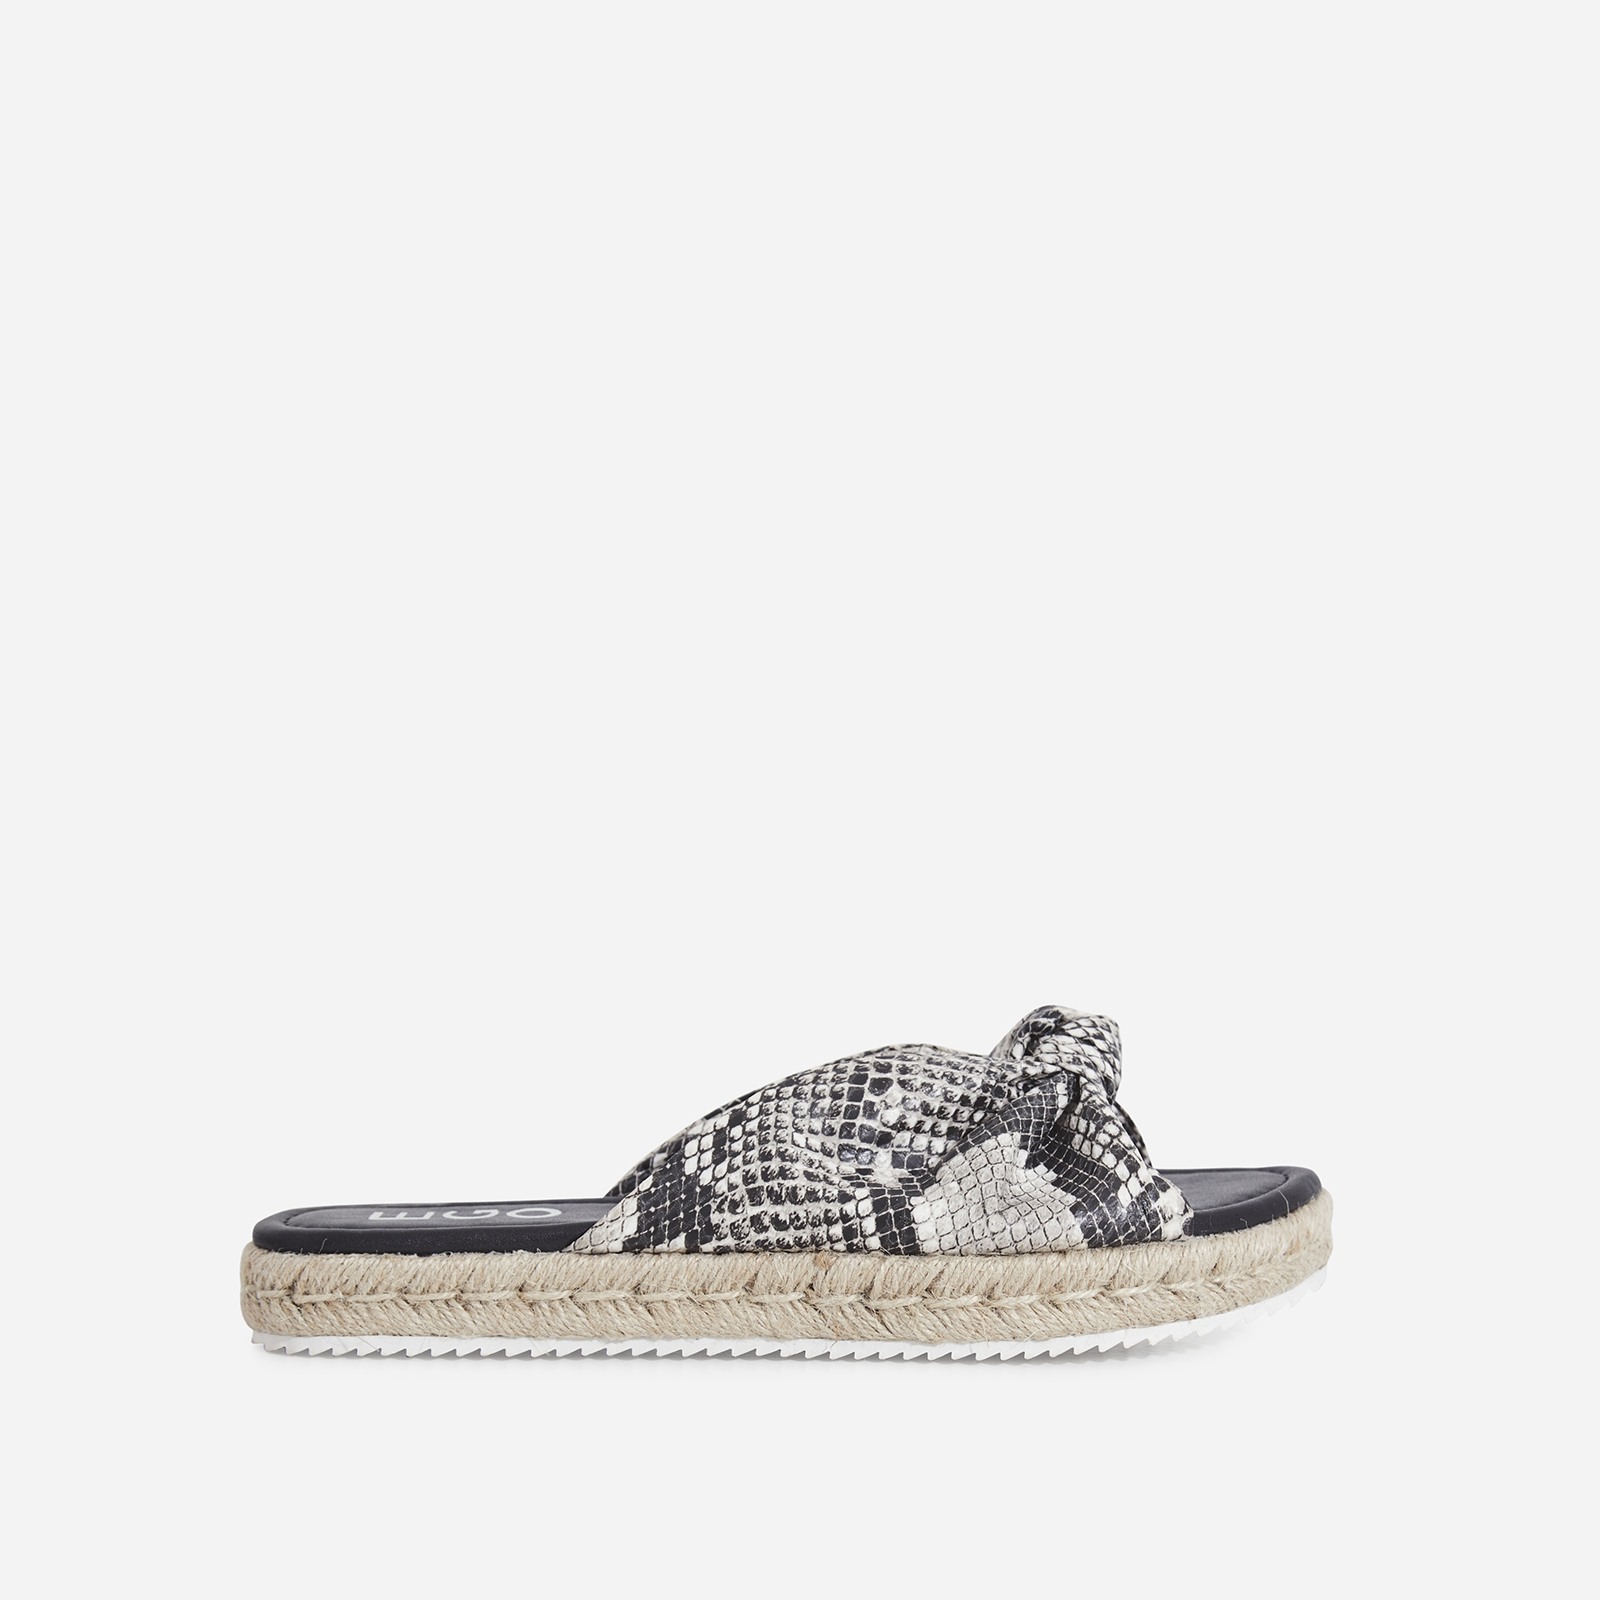 Birdy Bow Detail Espadrille Sandal In Nude Snake Print Faux Leather